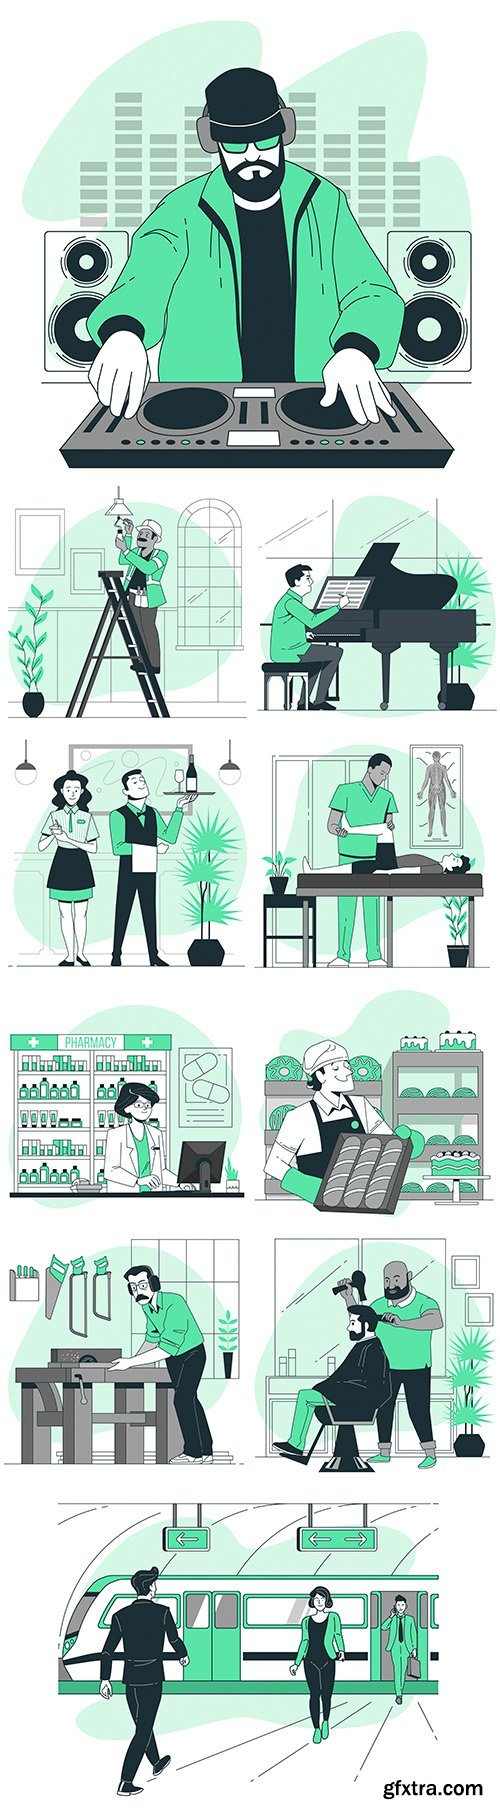 People in different situations and lifestyle flat design 3